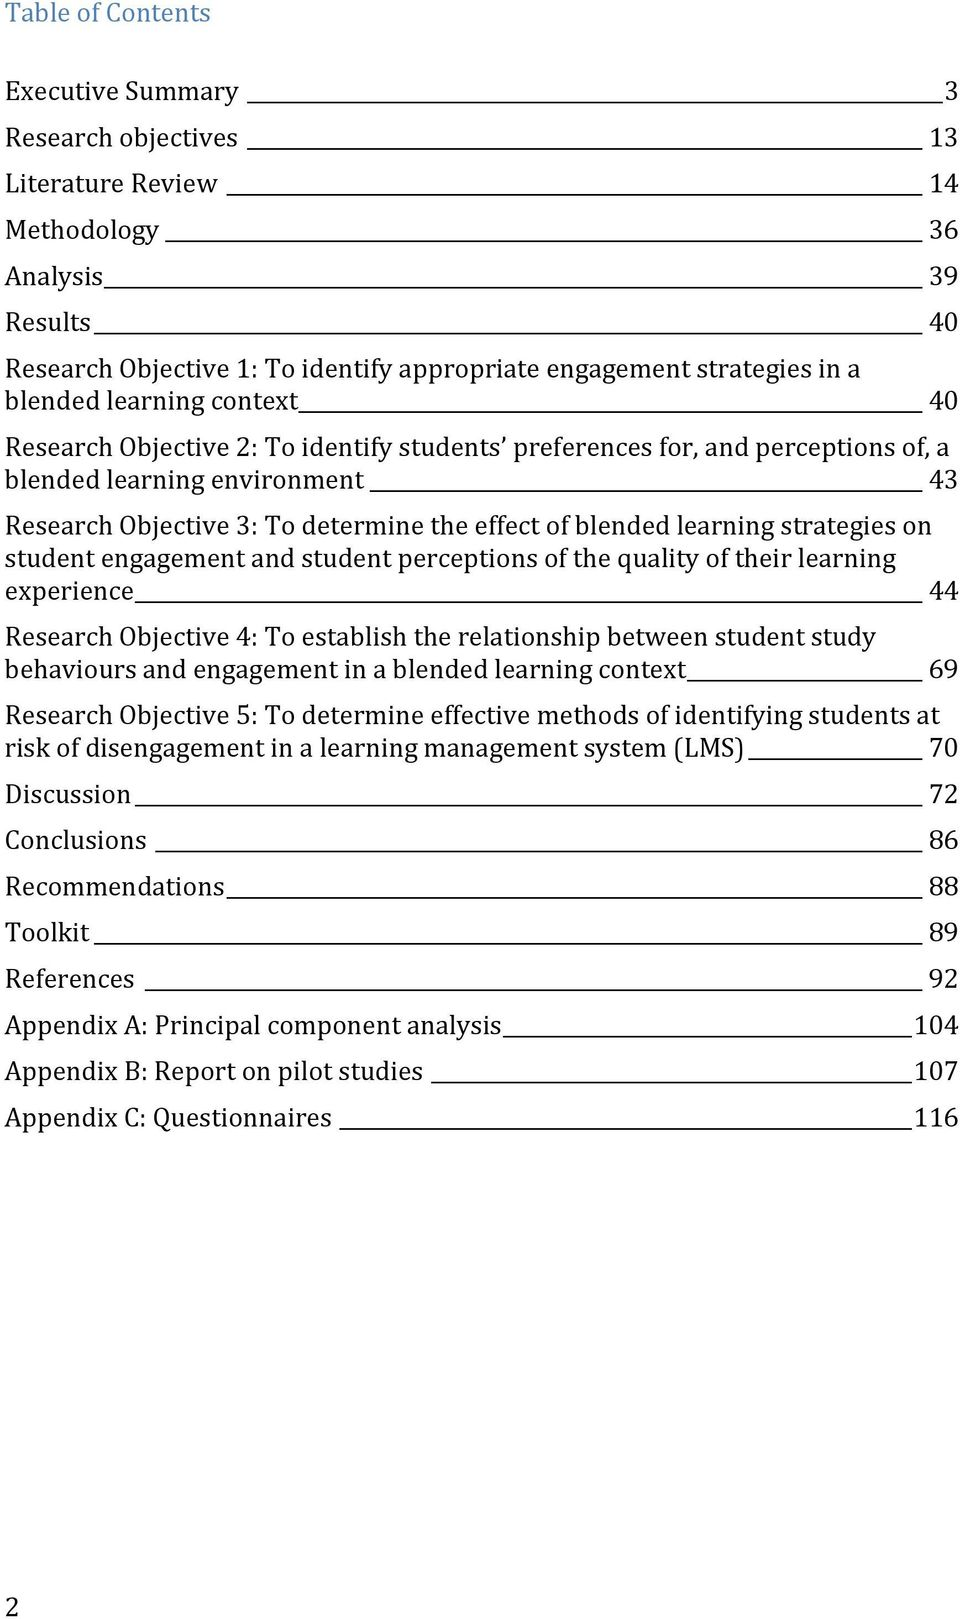 learning strategies on student engagement and student perceptions of the quality of their learning experience 44 Research Objective 4: To establish the relationship between student study behaviours